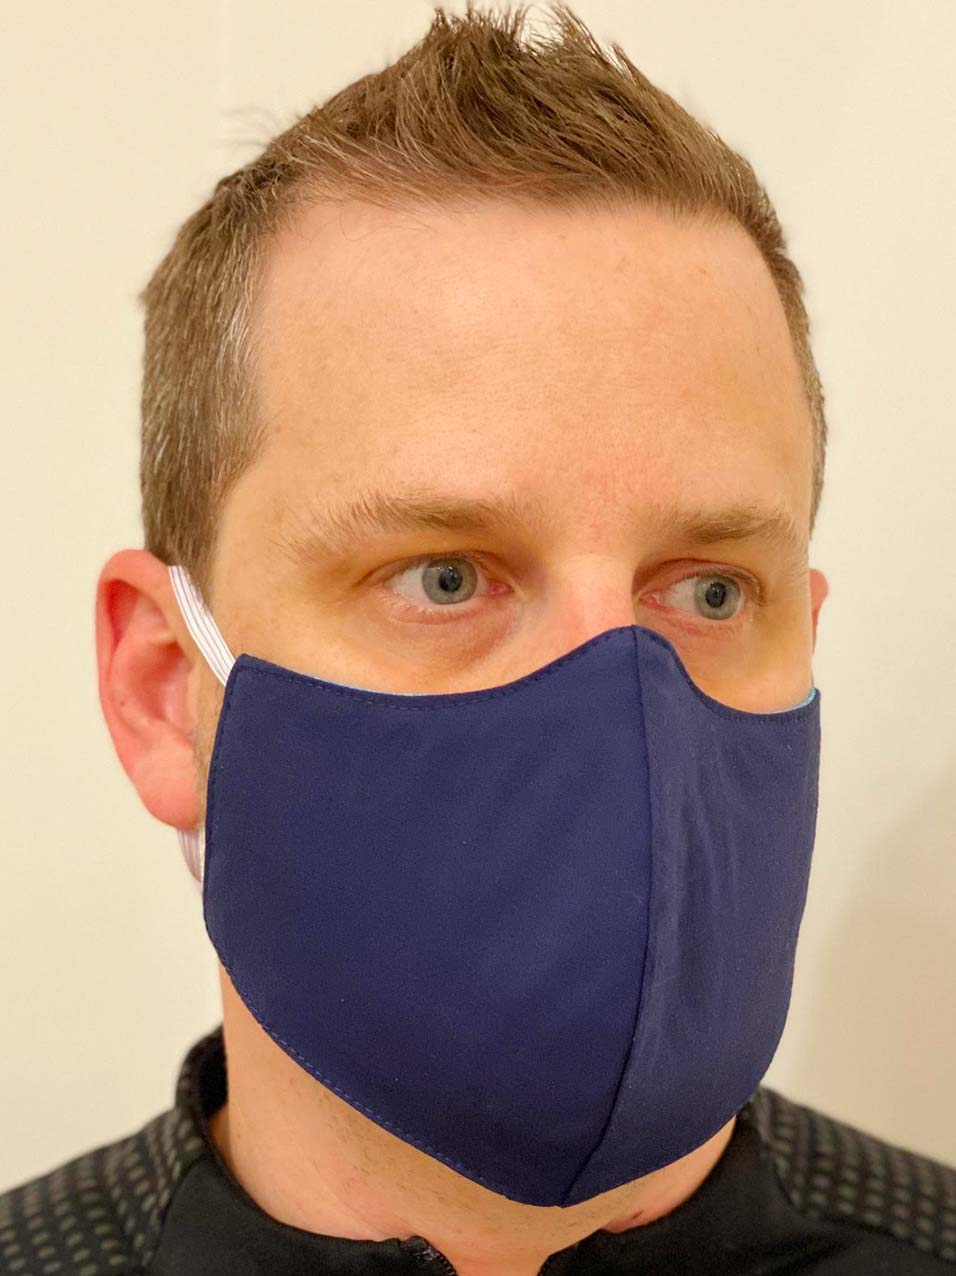 Blue face mask for COVID-19 being worn by a man